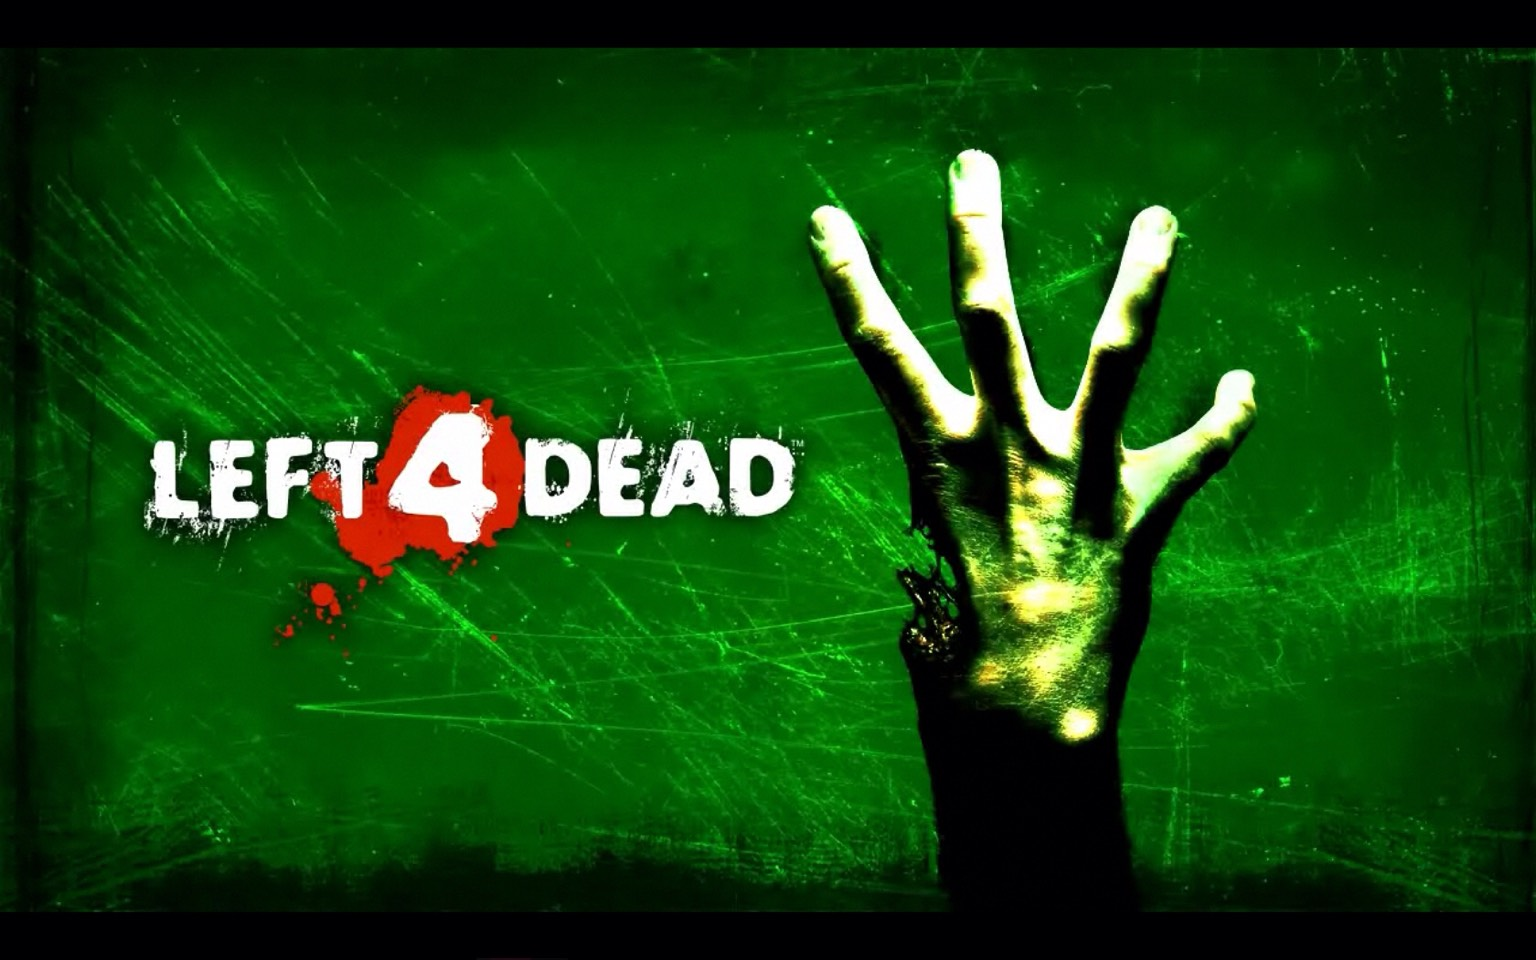 3.Left 4 Dead A heartwarming story about some survivors from the dead